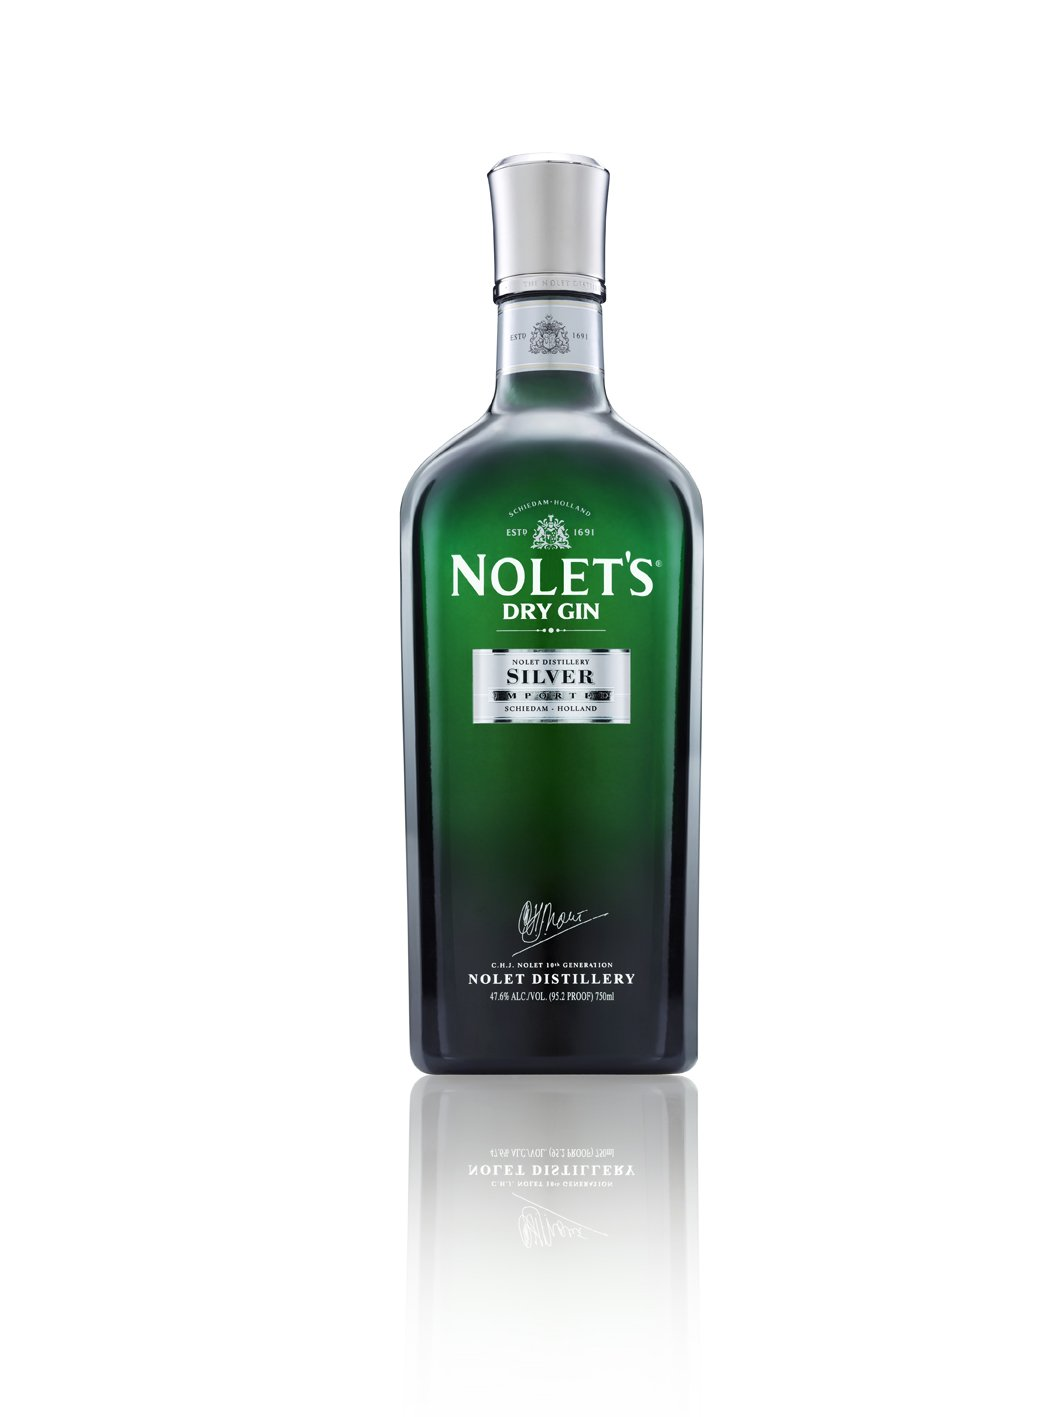 Nolet's Silver Dry Gin (2011)